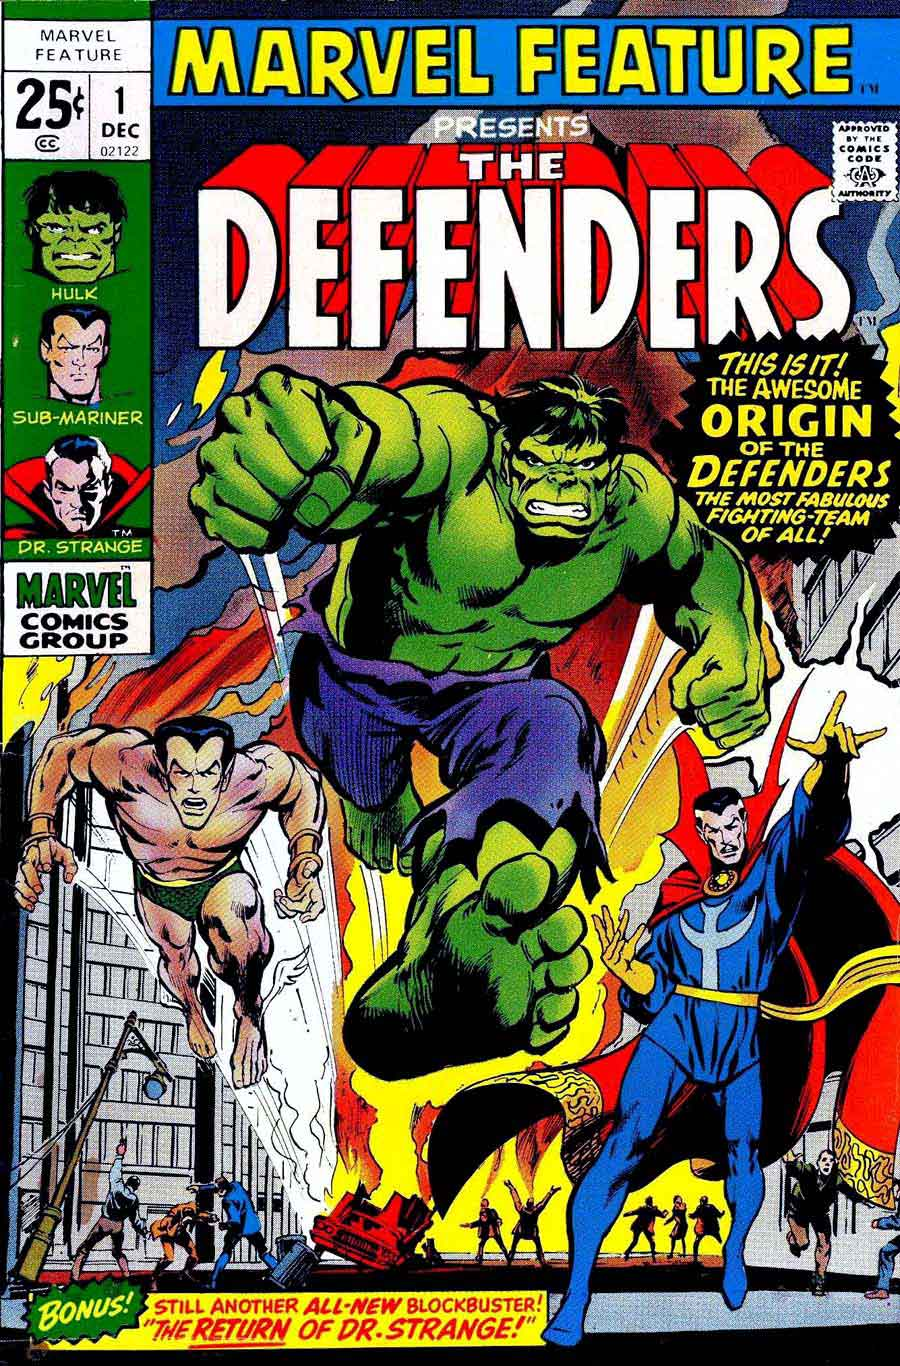 Marvel Comic Book Cover Art : Marvel feature defenders neal adams cover pencil ink